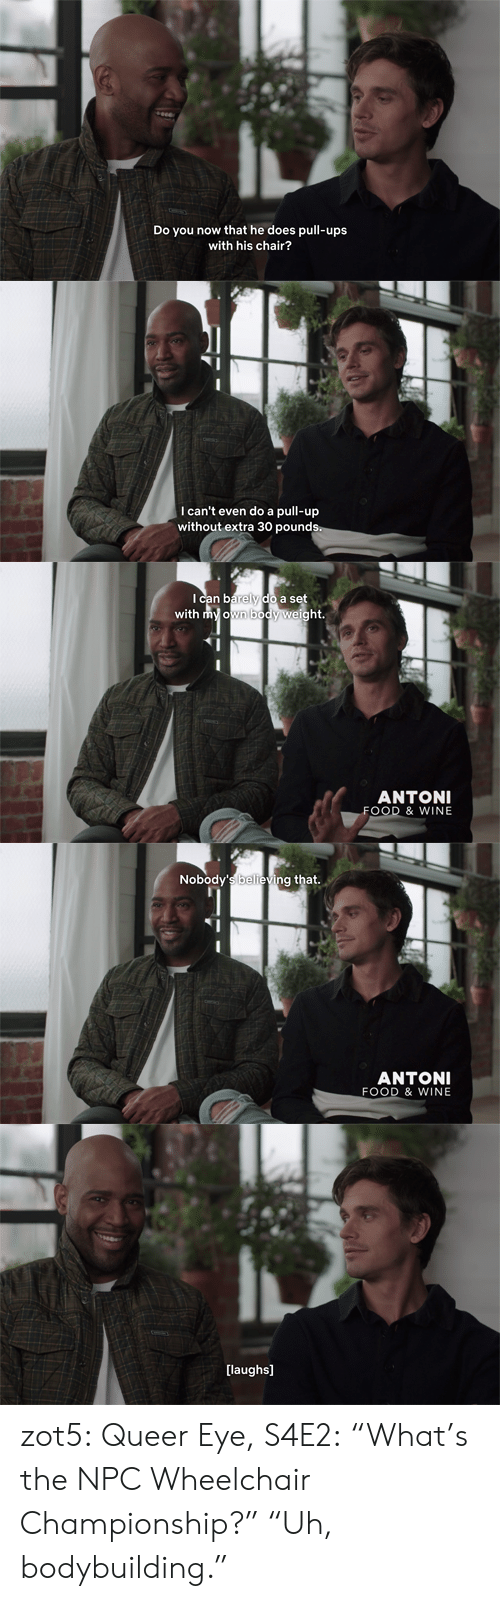 """npc: Do y  now that he does pull-ups  with his chair?   I can't even do a pull-up  without extra 30 pounds   Ican barely do a set  with my own body weight.  ANTONI  FOOD & WINE   Nobody's believing that.  ANTONI  FOOD & WINE   [laughs] zot5:  Queer Eye, S4E2:""""What's the NPC Wheelchair Championship?""""""""Uh, bodybuilding."""""""